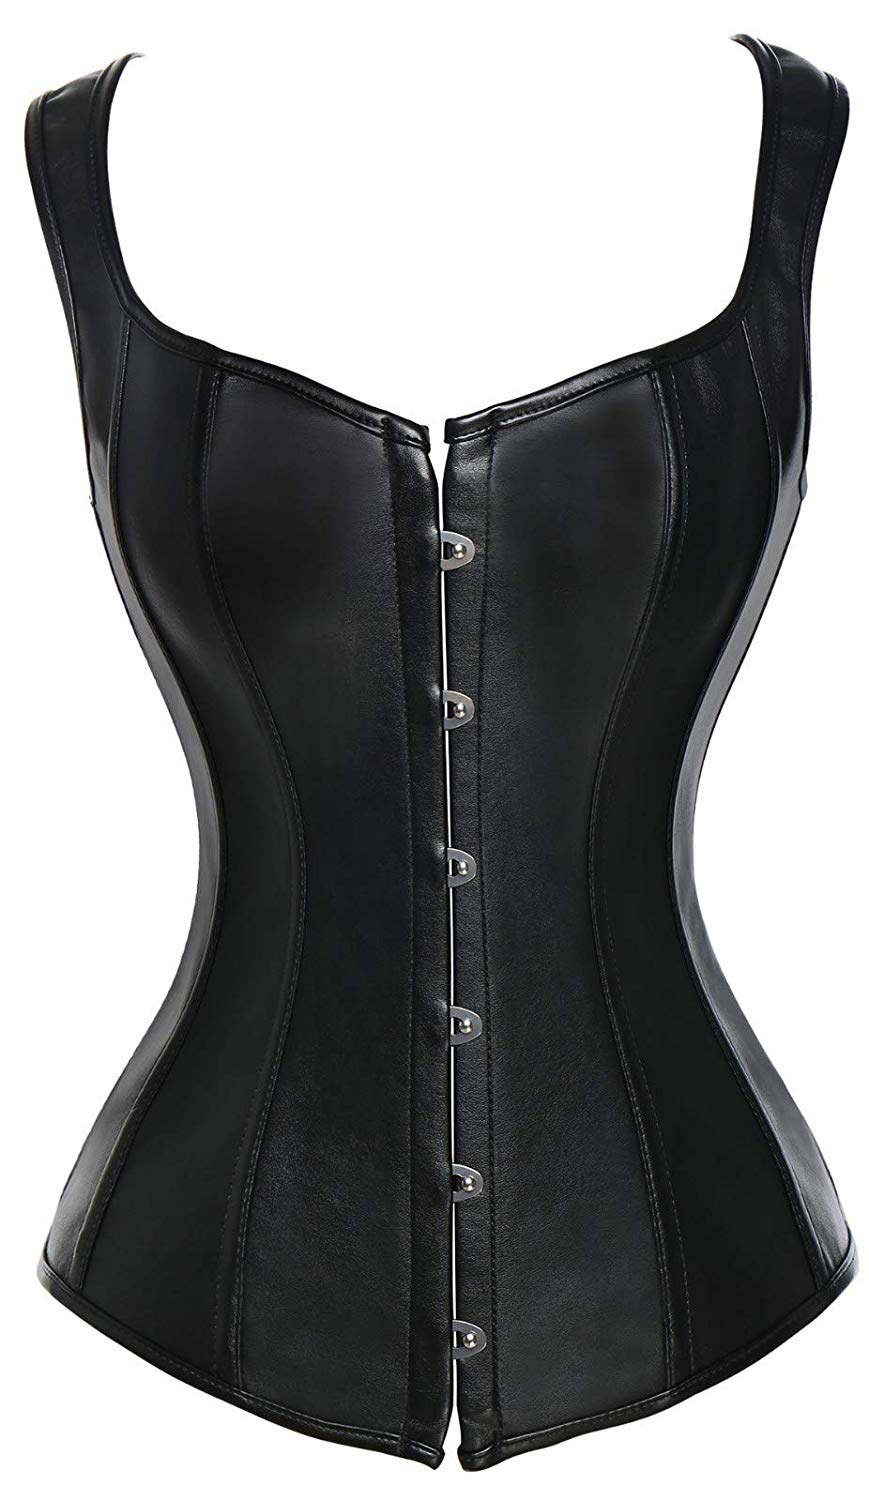 72a861b00d Get Quotations · CROSS1946 Steampunk Punk Rock Faux Leather Overbust Bustiers  Corsets Basque Top Vests